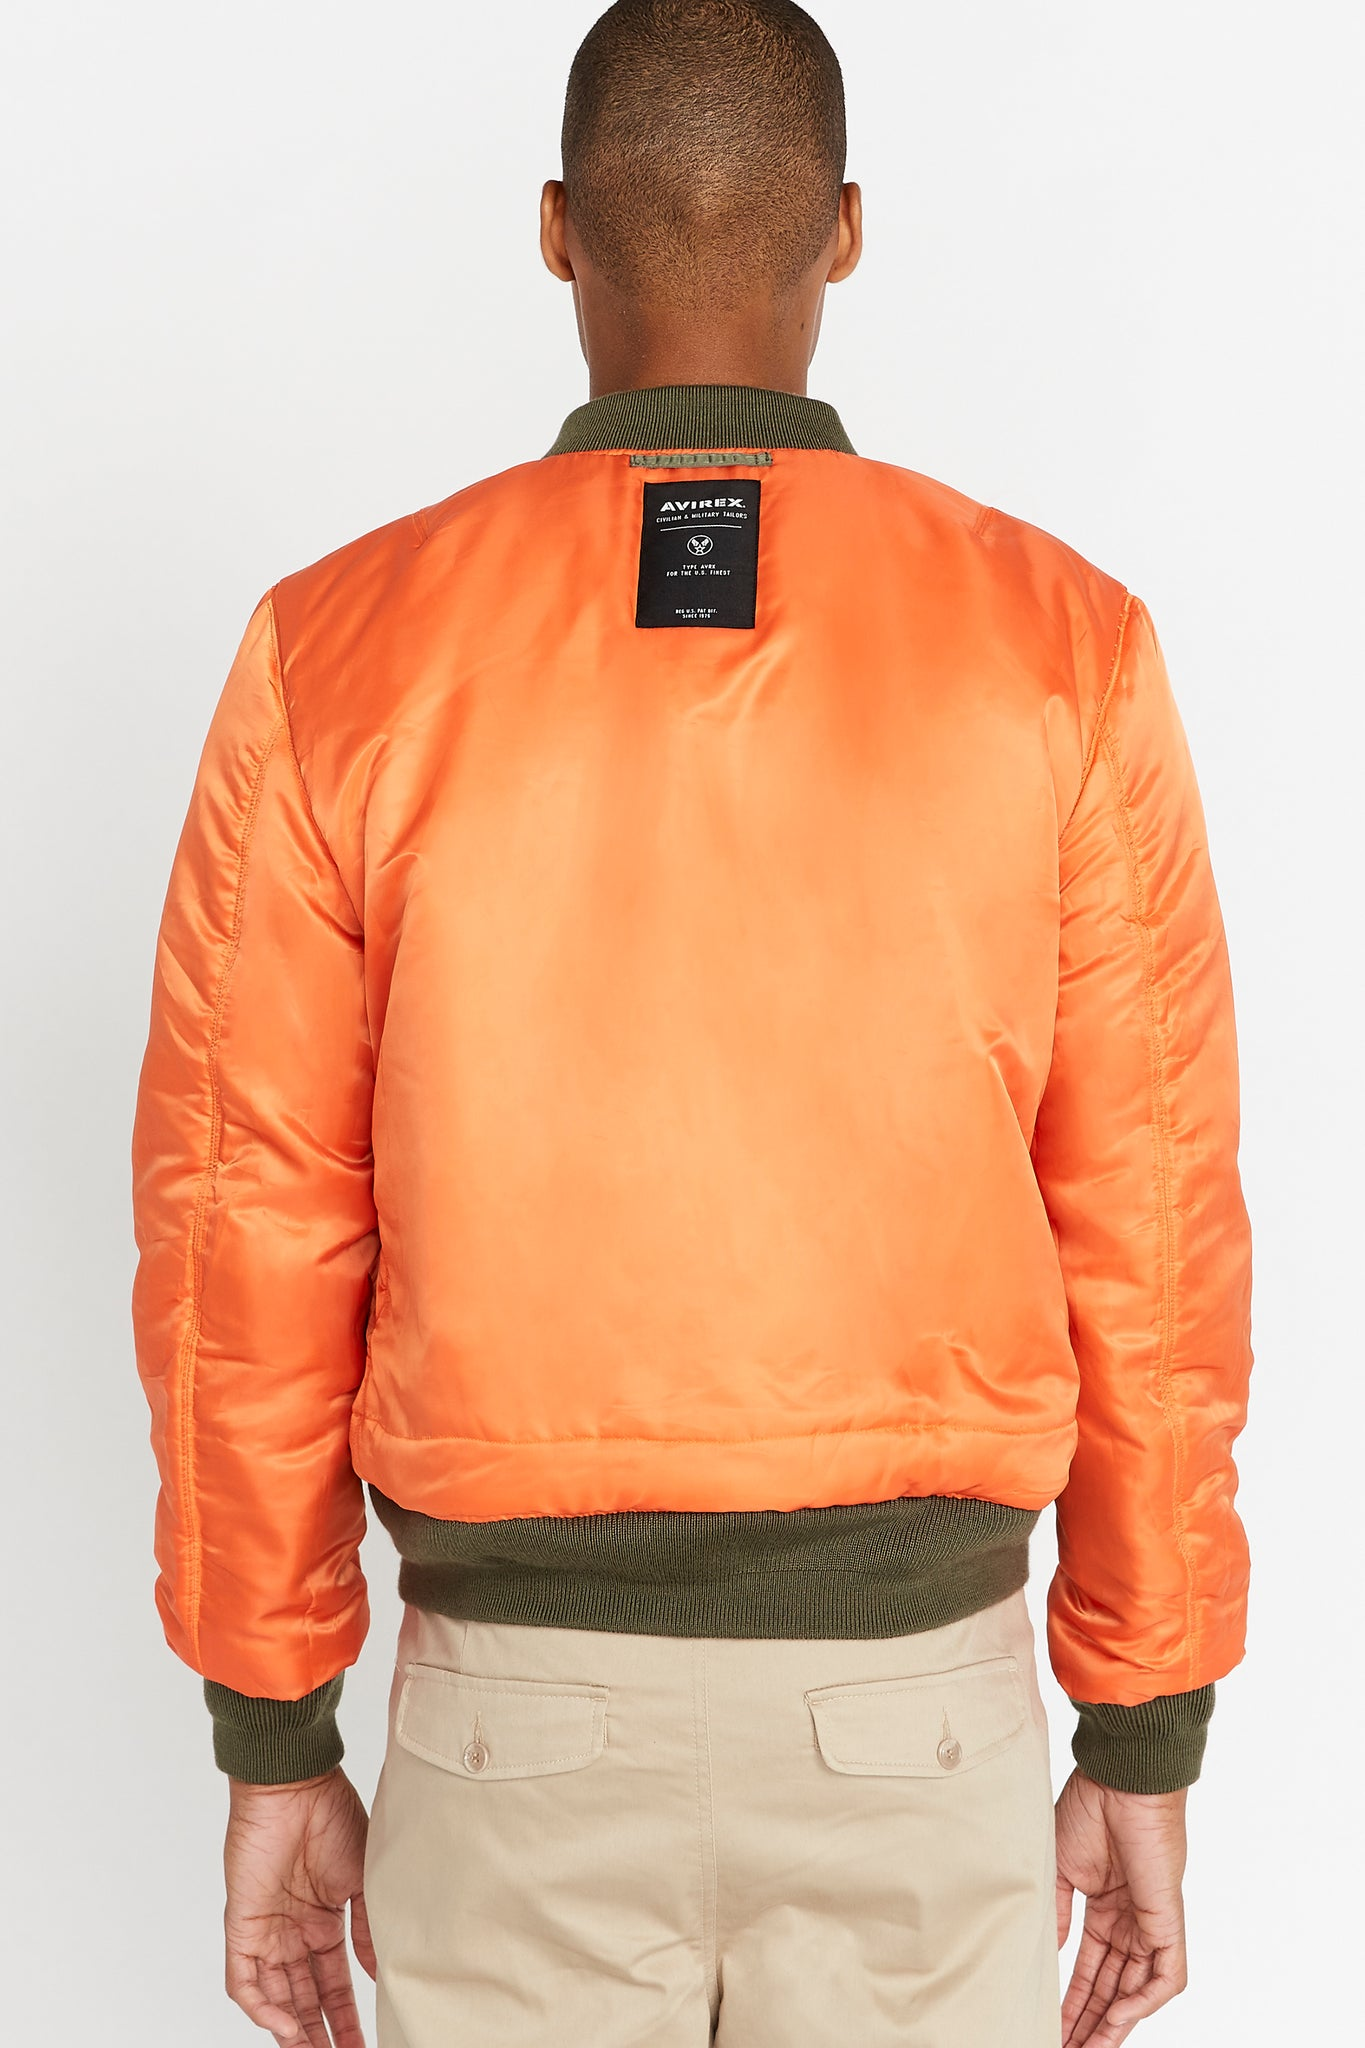 Back view of men wearing a reversed orange aviation bomber nylon jacket with patch under collar